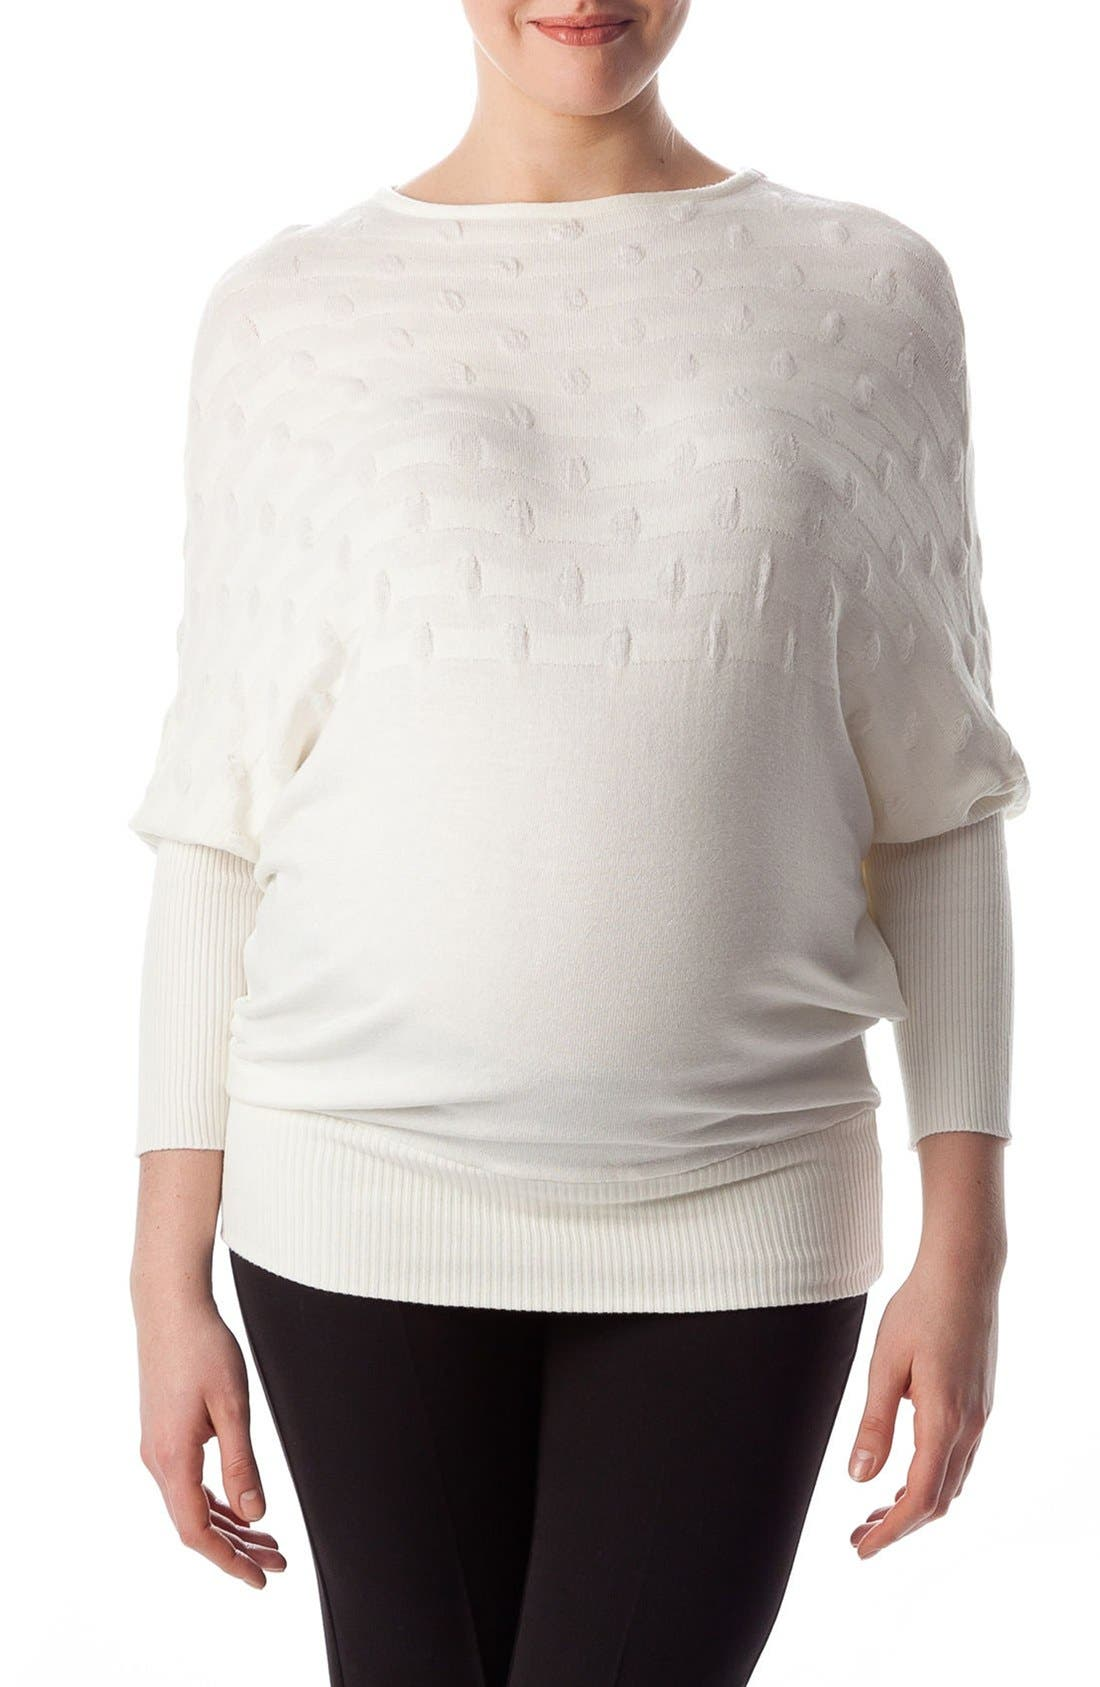 Megeve Maternity Top,                         Main,                         color, Cream White